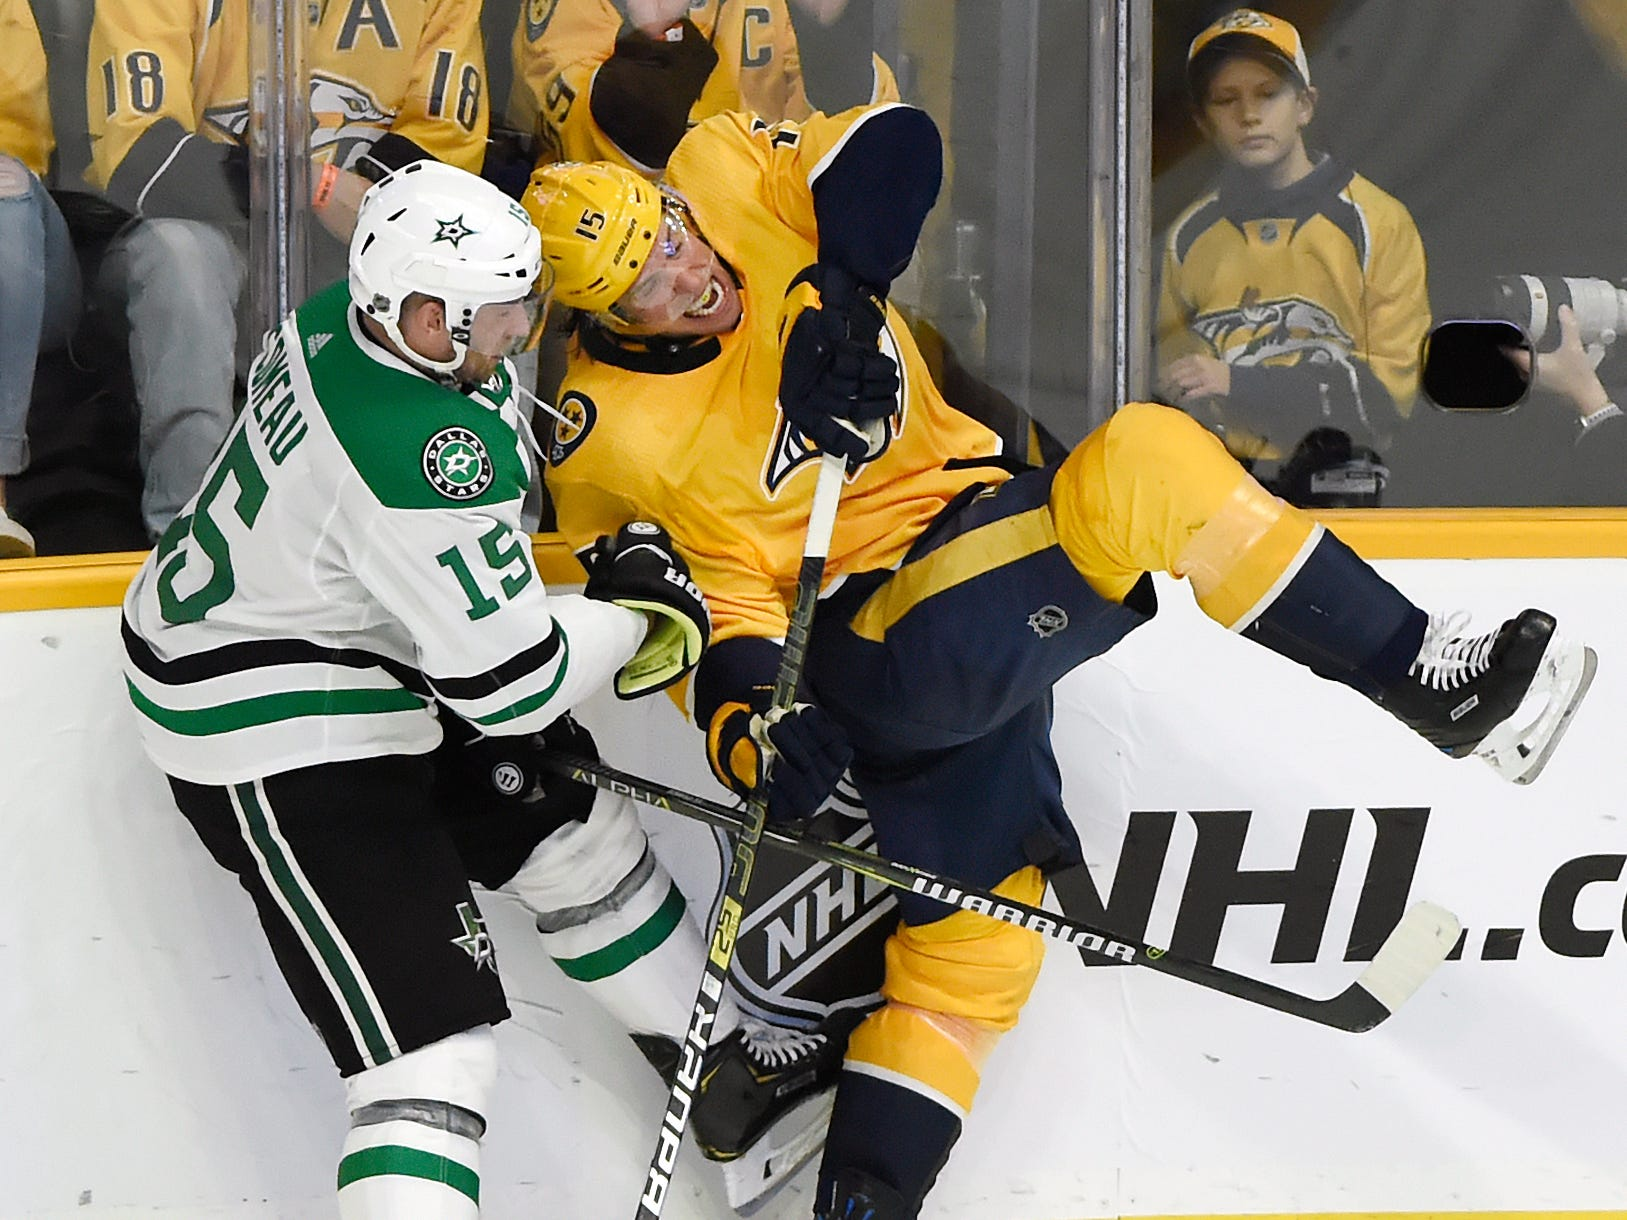 Dallas Stars left wing Blake Comeau, left, collides with Nashville Predators right wing Craig Smith during the third period of an NHL hockey game Thursday, Dec. 27, 2018, in Nashville, Tenn. The Stars won 2-0.